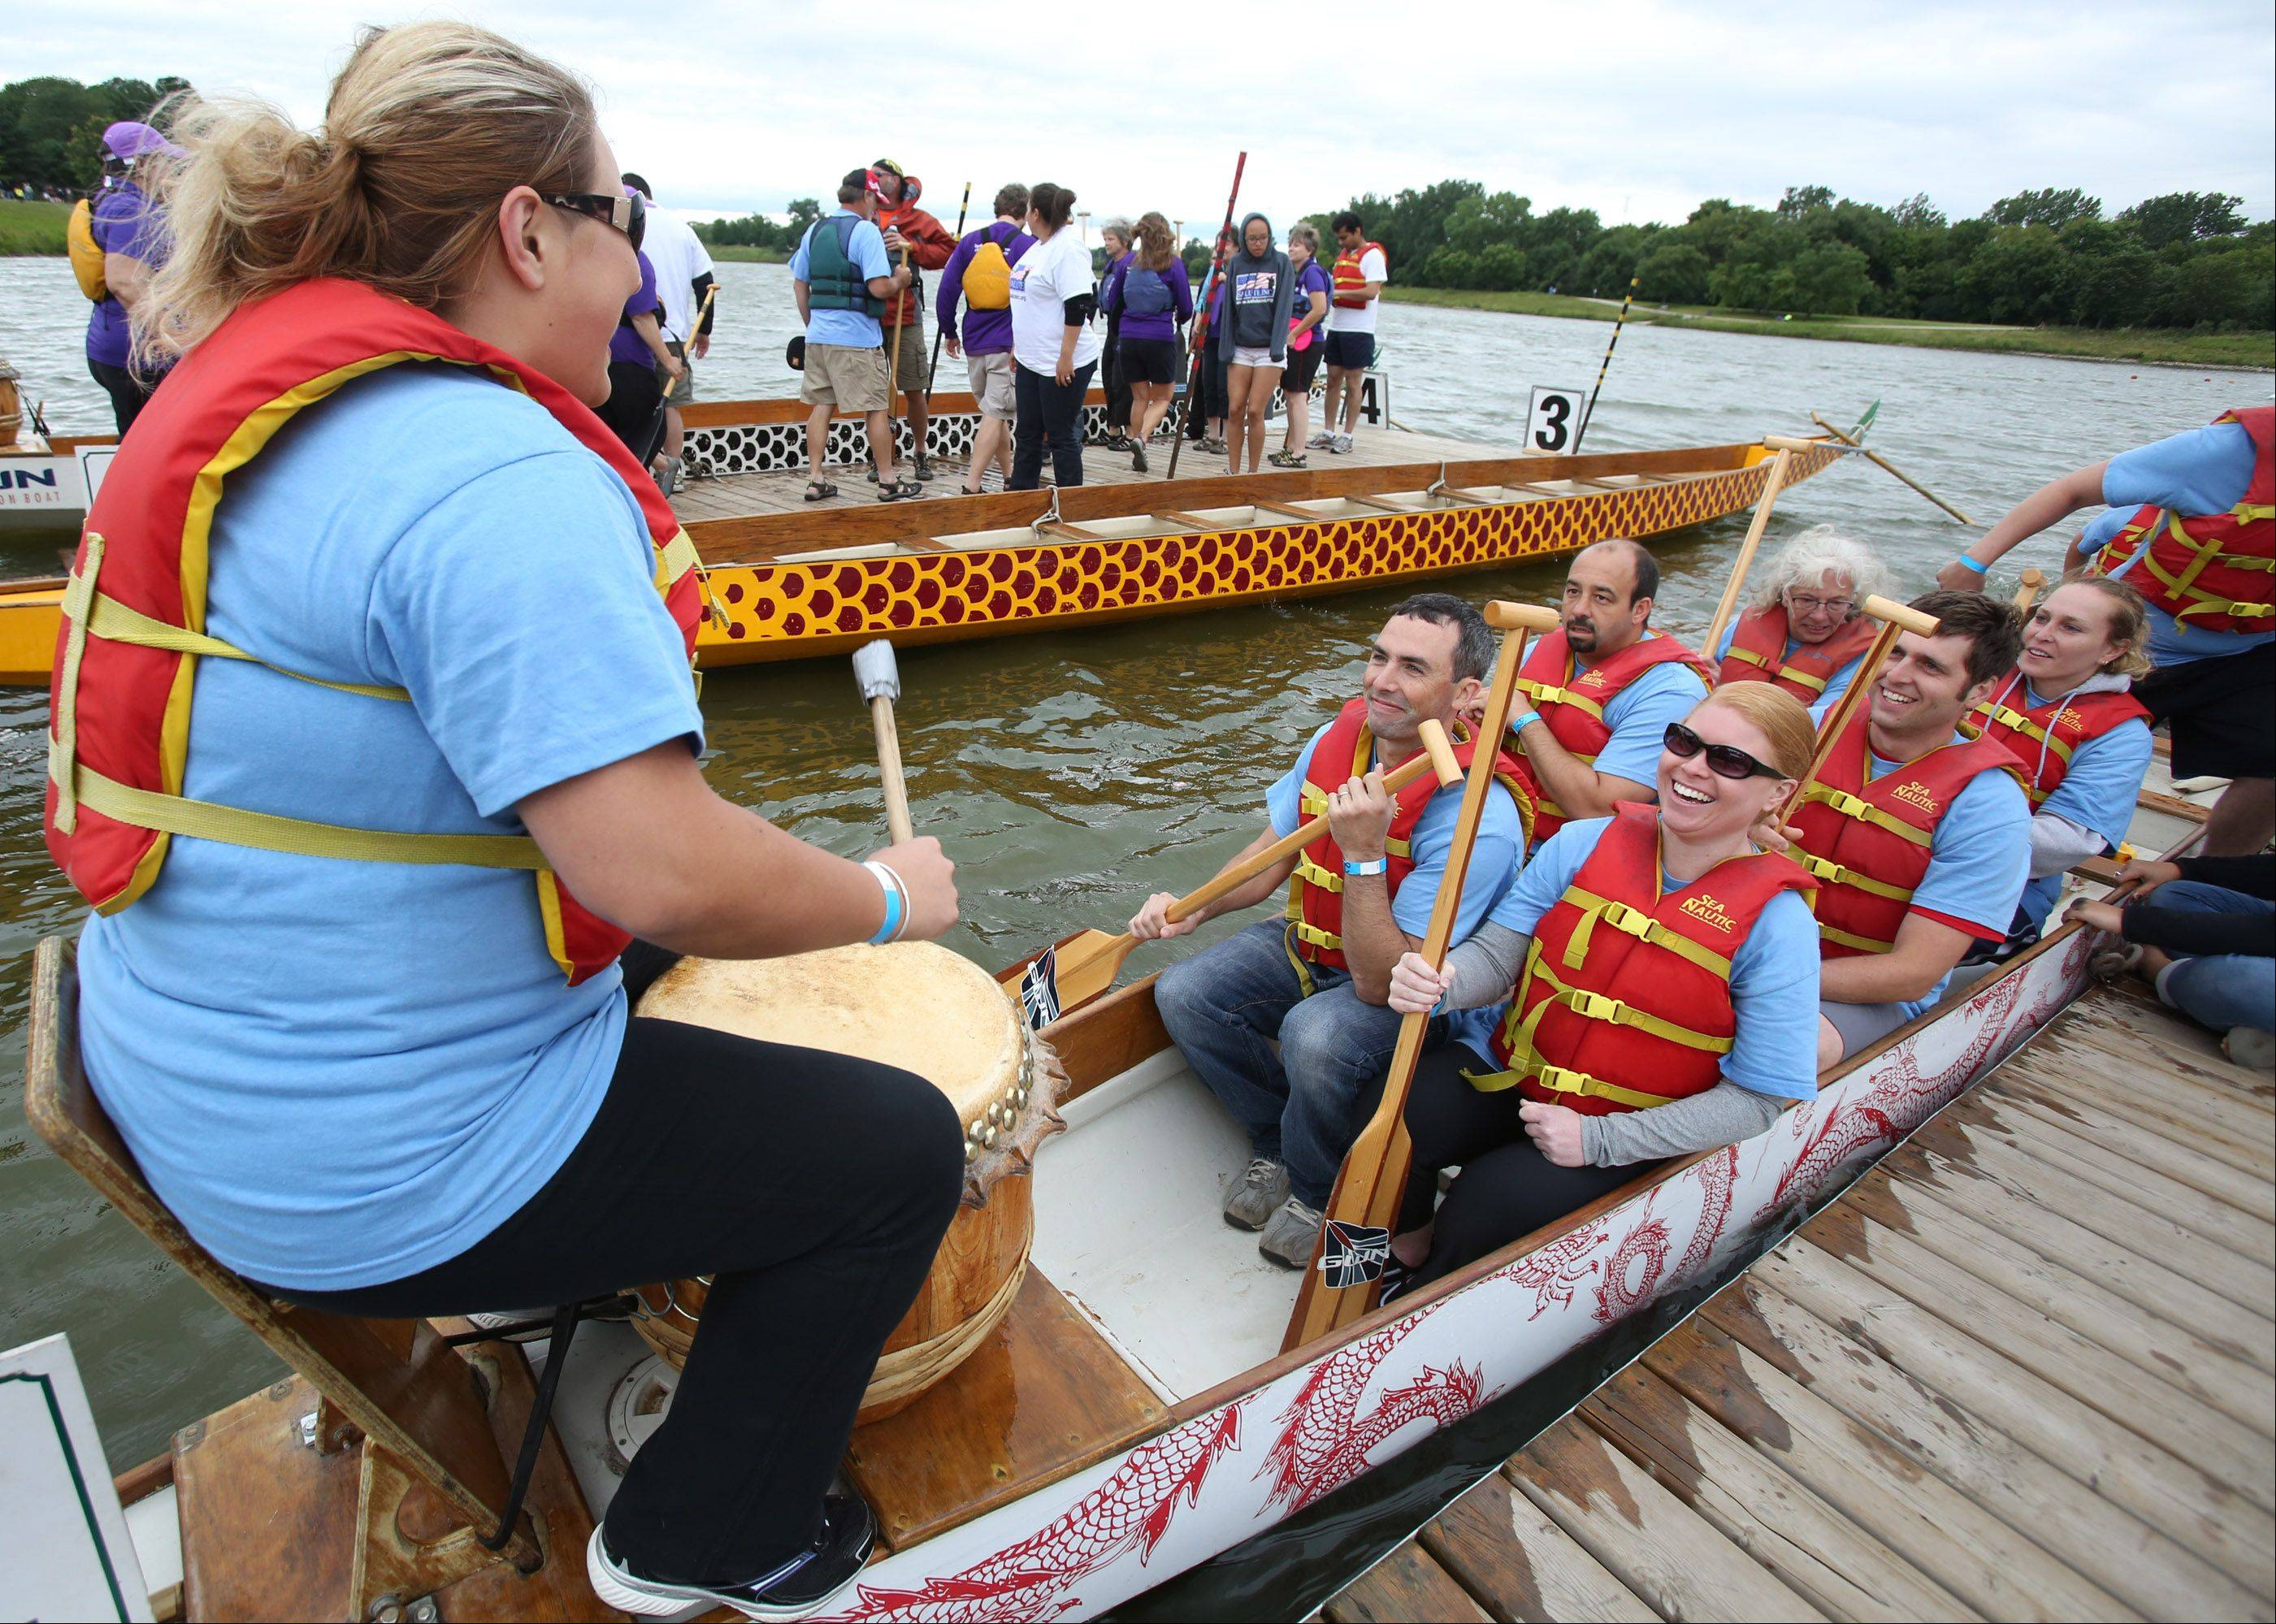 Karolina Baran drums to get her Walgreens Chicago Suburbs team motivated at the Walgreens Chicago International Dragon Boat Festival Saturday at Lake Arlington in Arlington Heights.